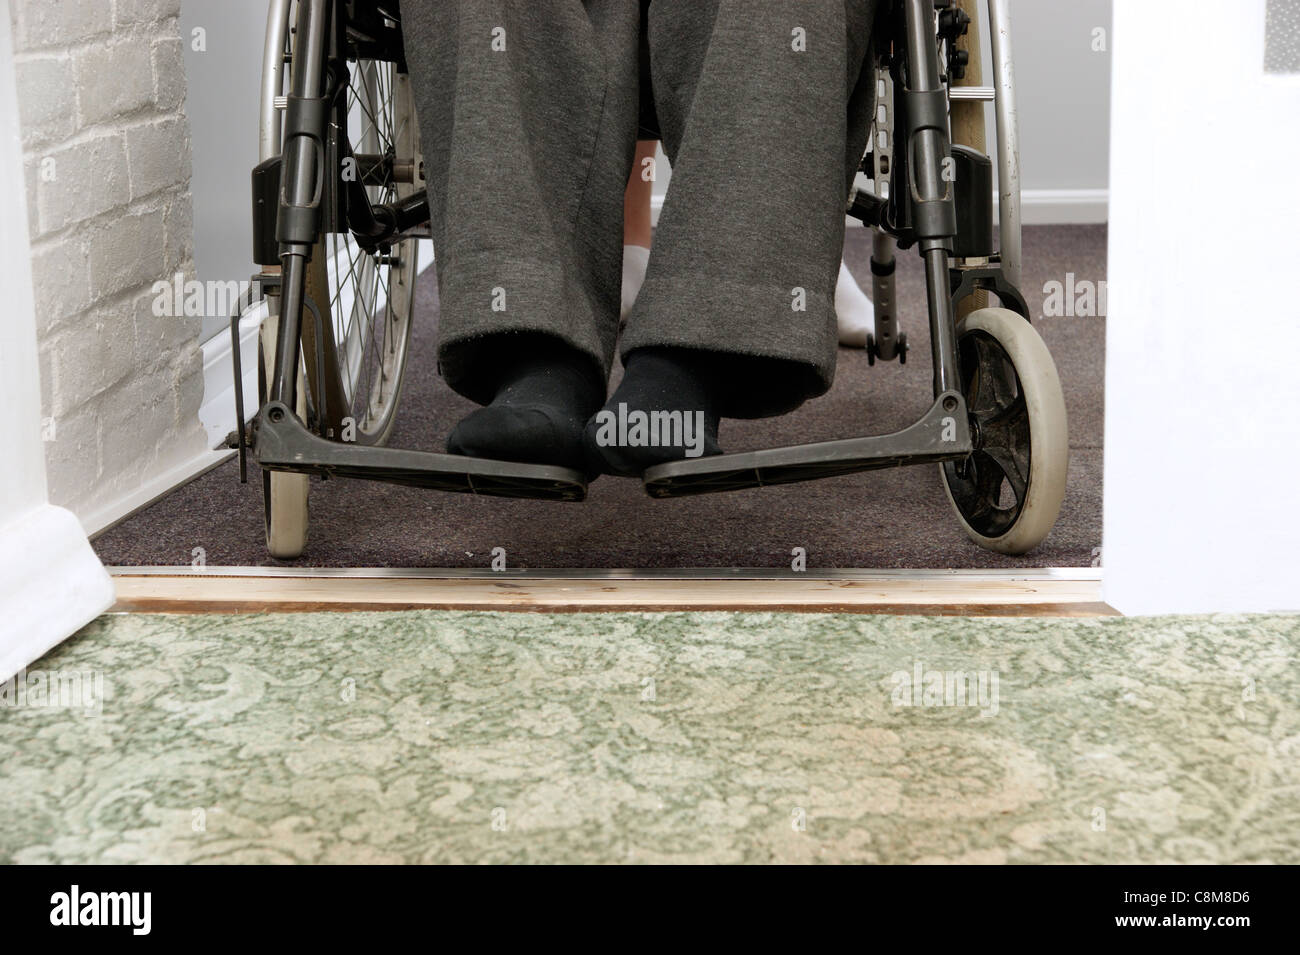 Easy access over adapted renovated flooring area from porch to hall for an elderly wheelchair user - Stock Image